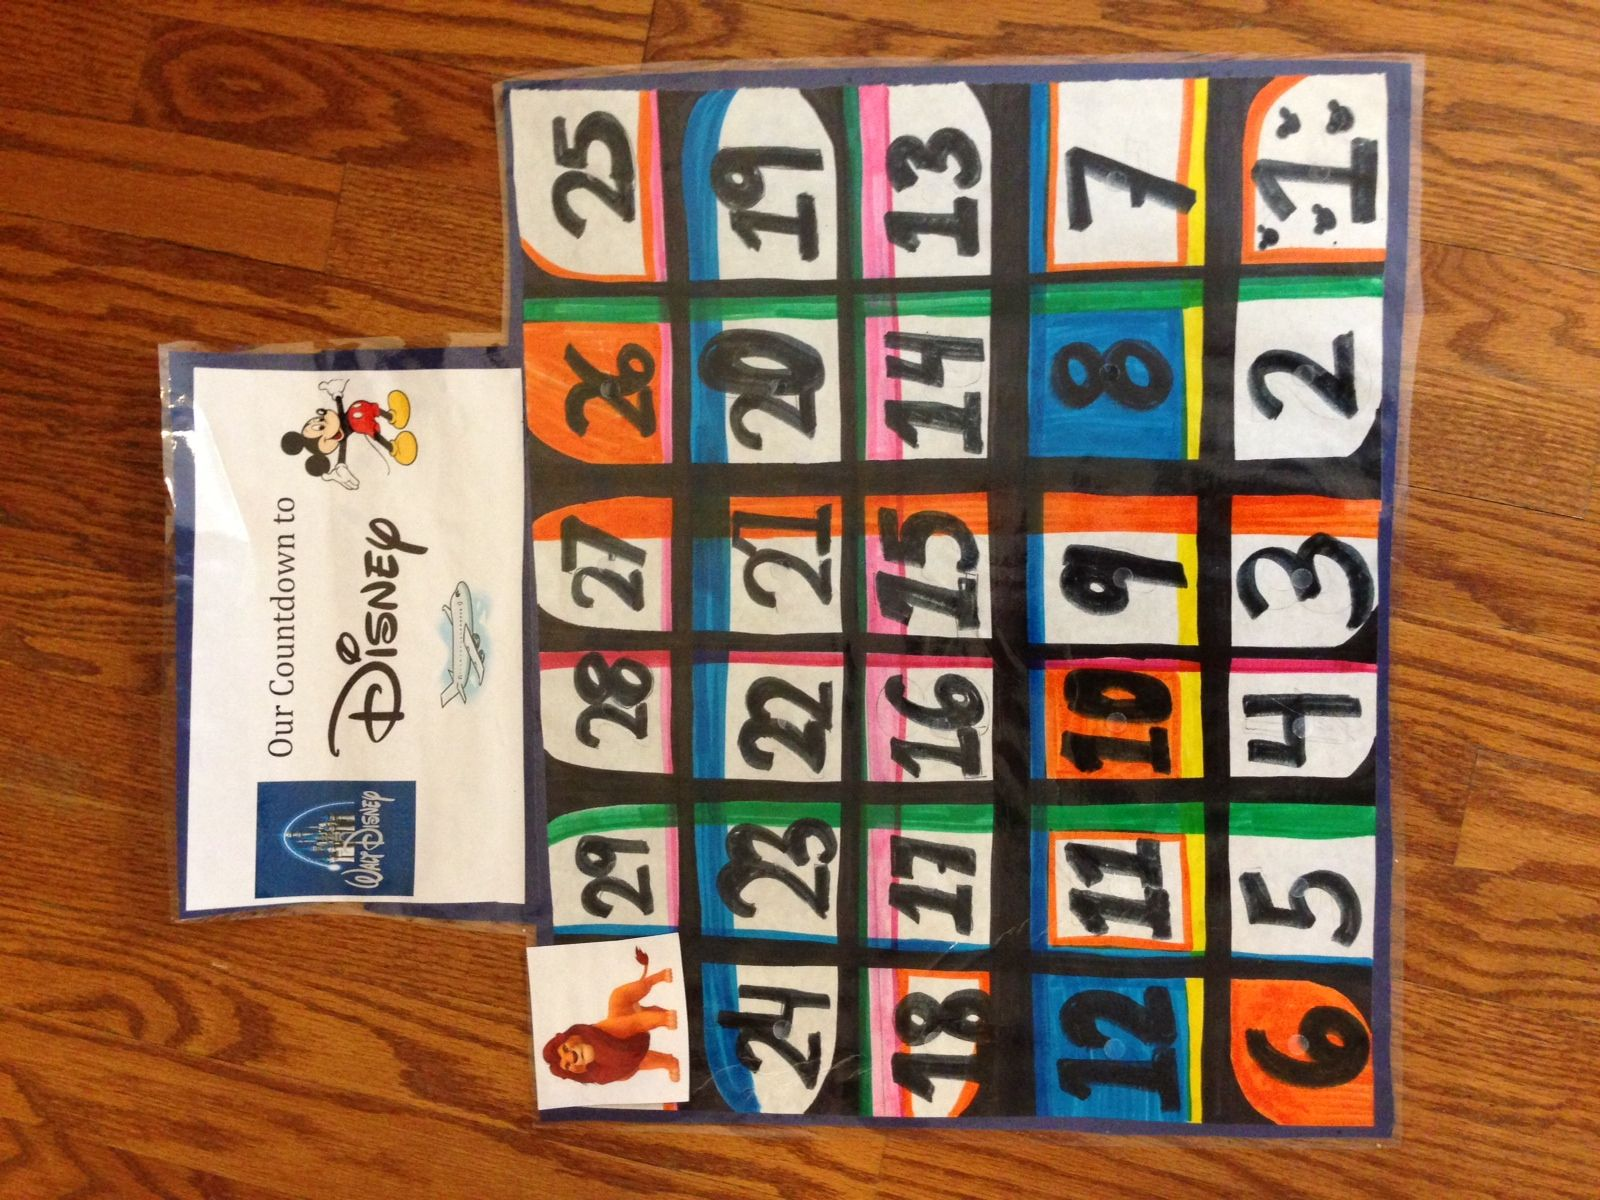 Disney Countdown Calendar!  I made a 30 day countdown calendar where my son will pick a character/places we will see when we go there!  The calendar and cards were laminated and have Velcro so they can attach.  Looking forward to our trip!